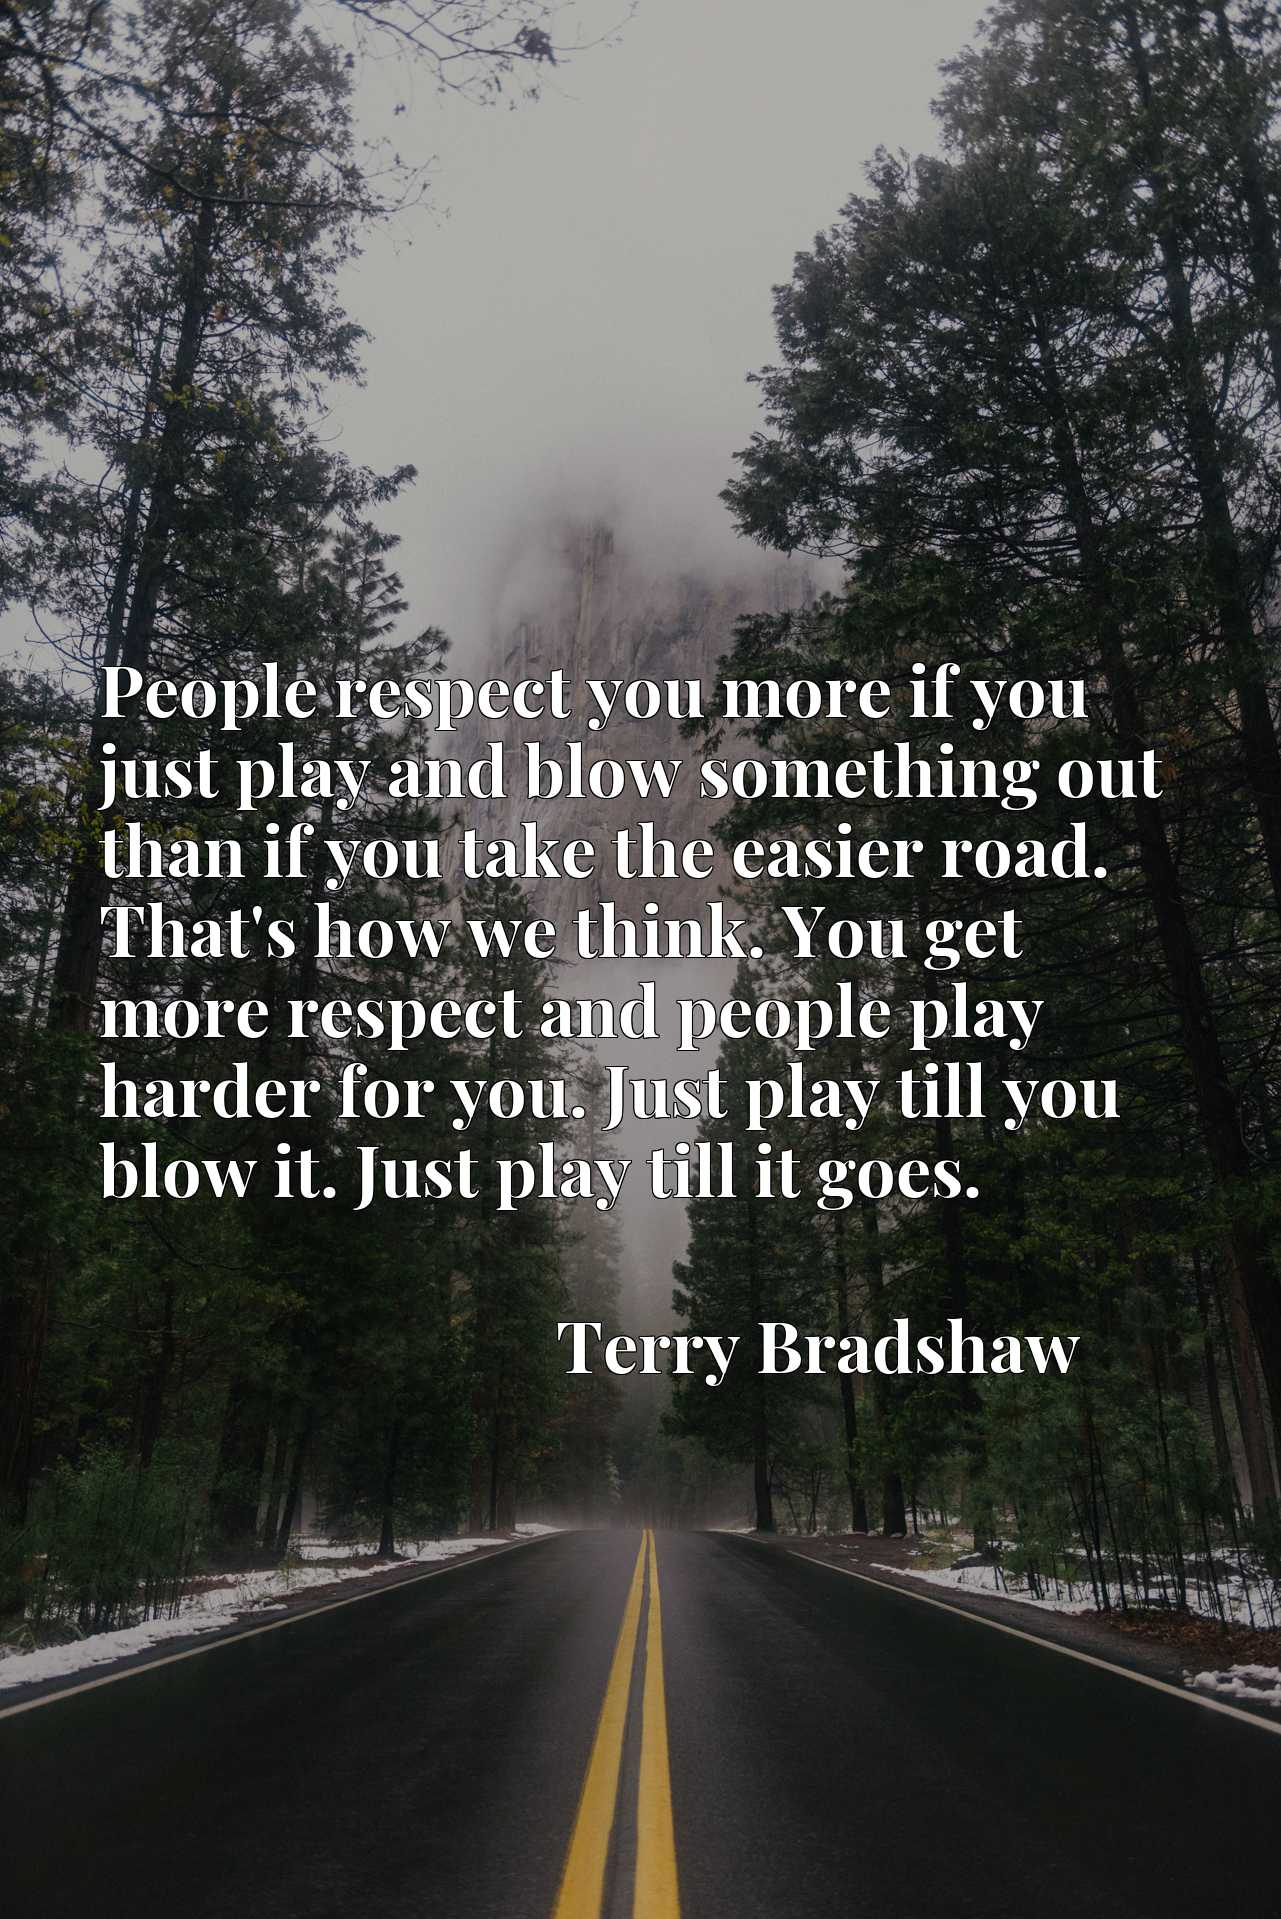 People respect you more if you just play and blow something out than if you take the easier road. That's how we think. You get more respect and people play harder for you. Just play till you blow it. Just play till it goes.